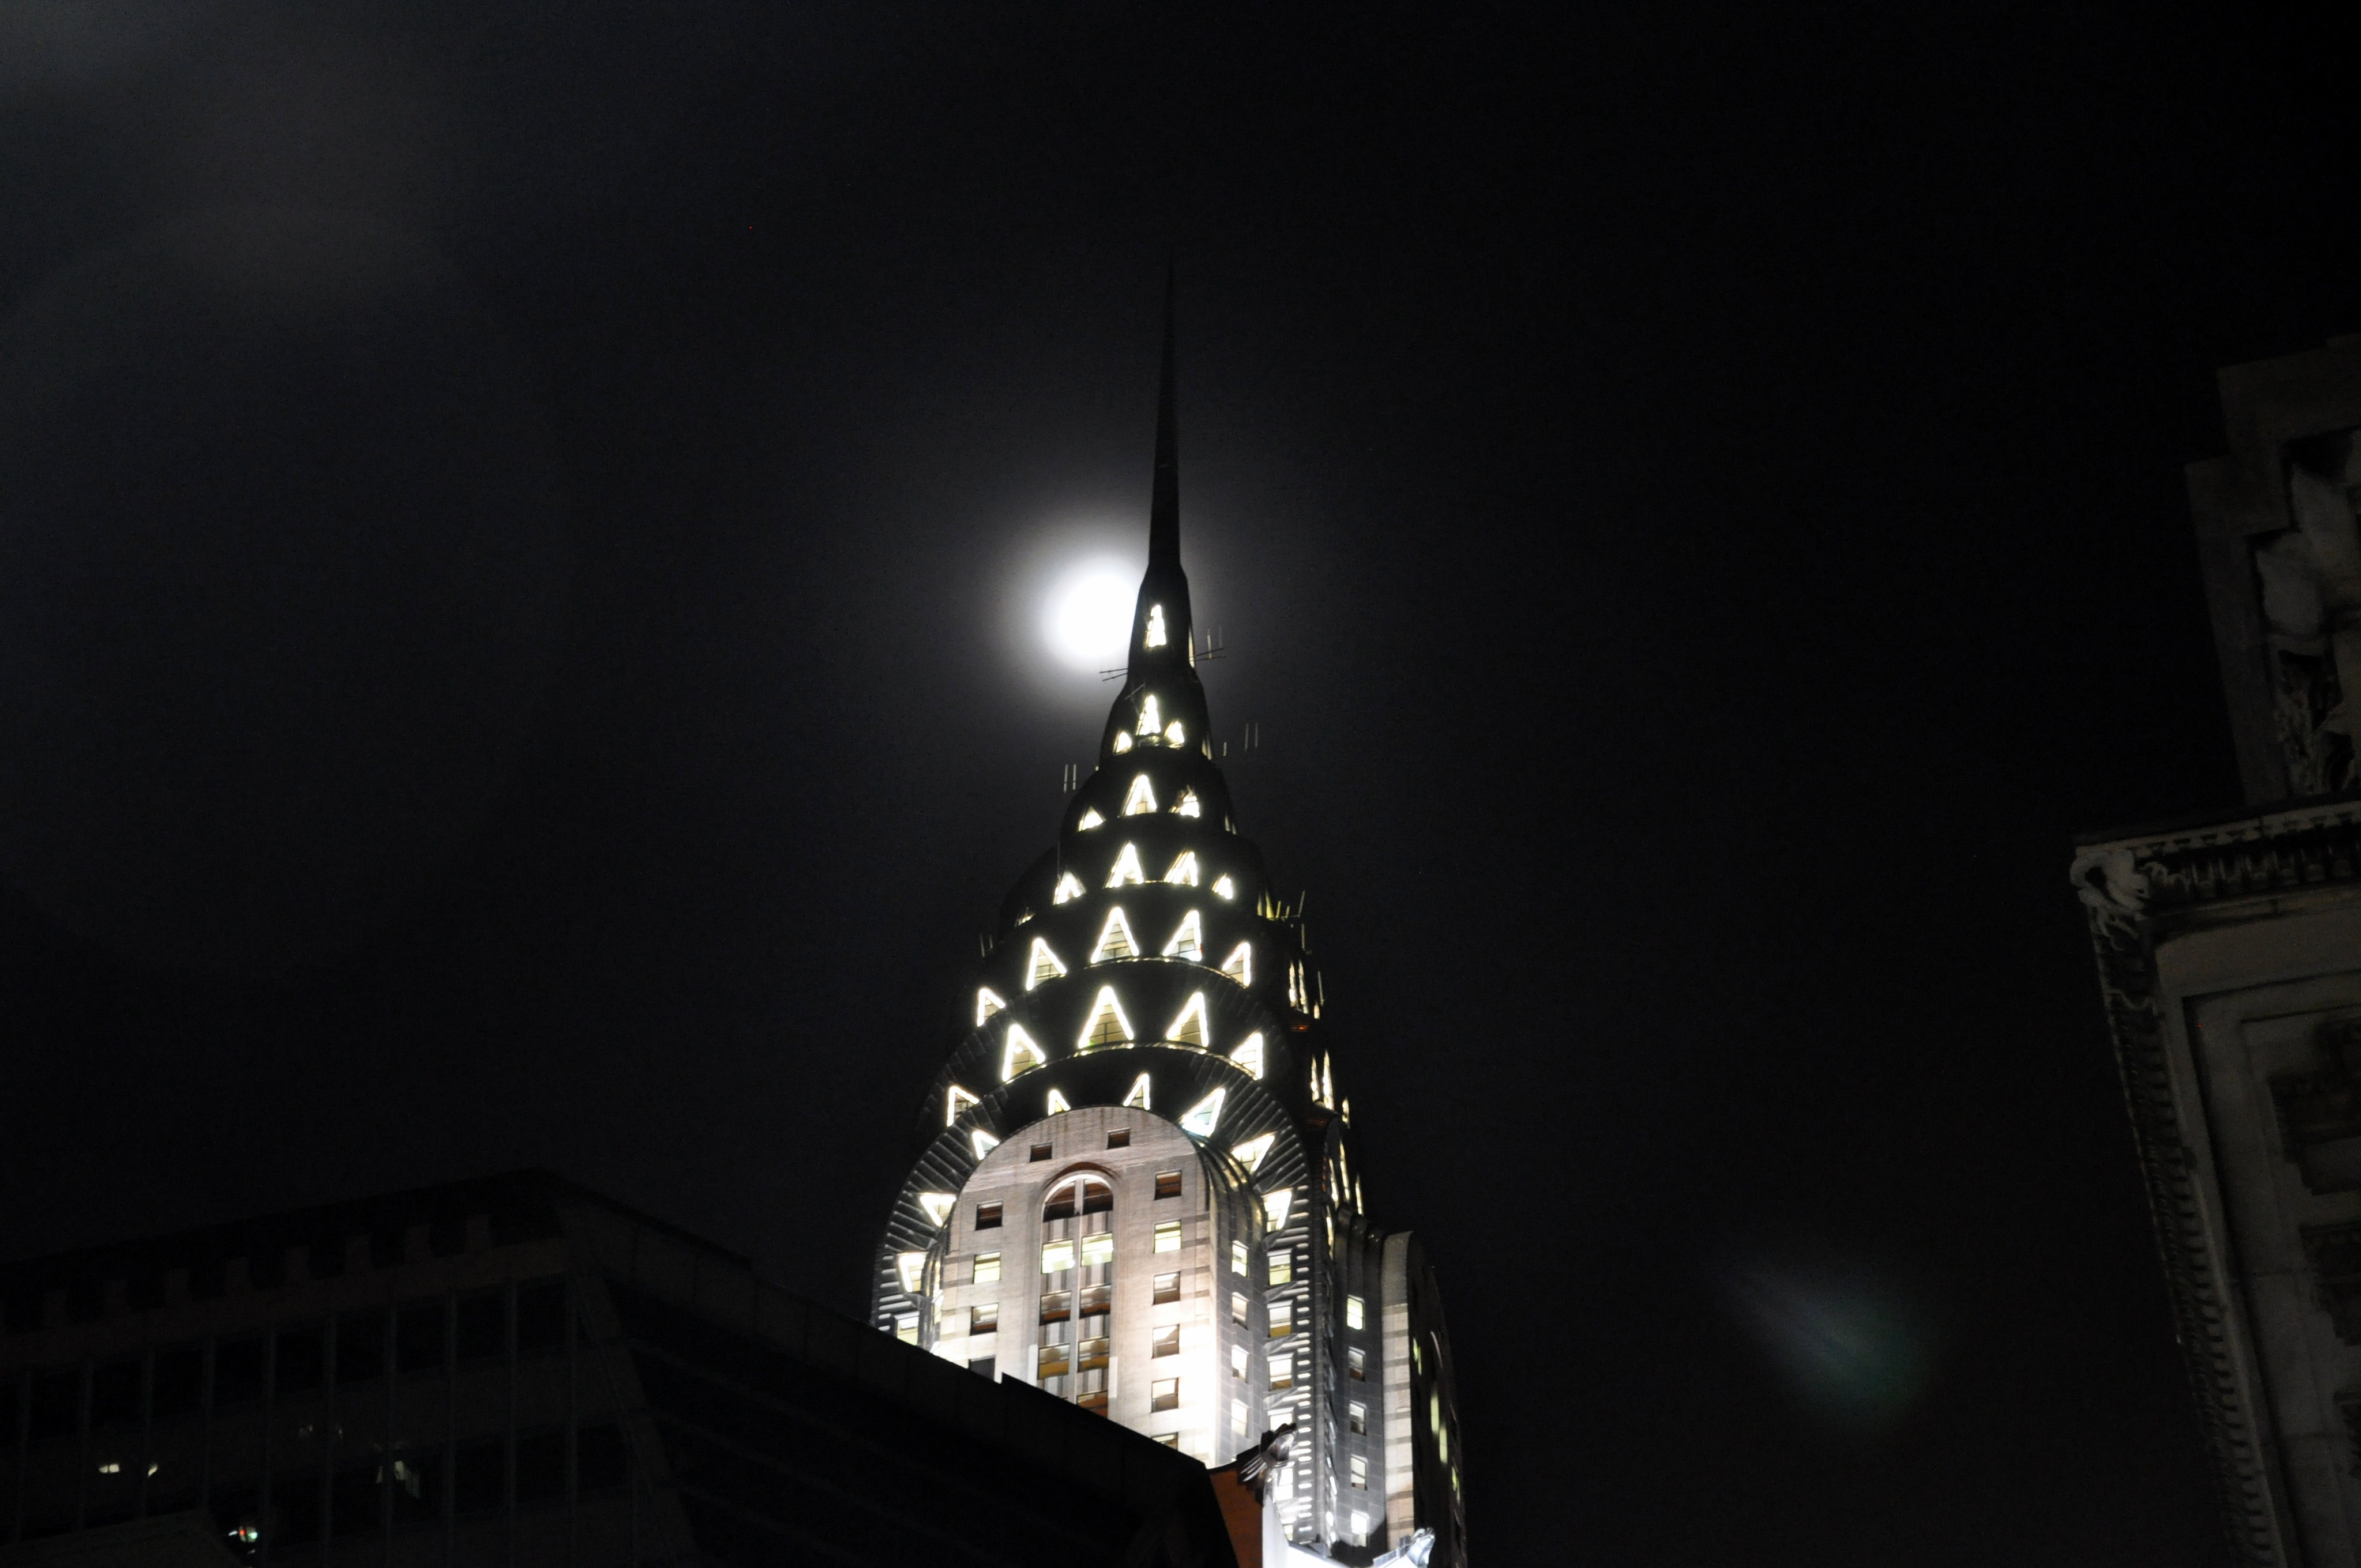 Moon Over the Chrysler Building